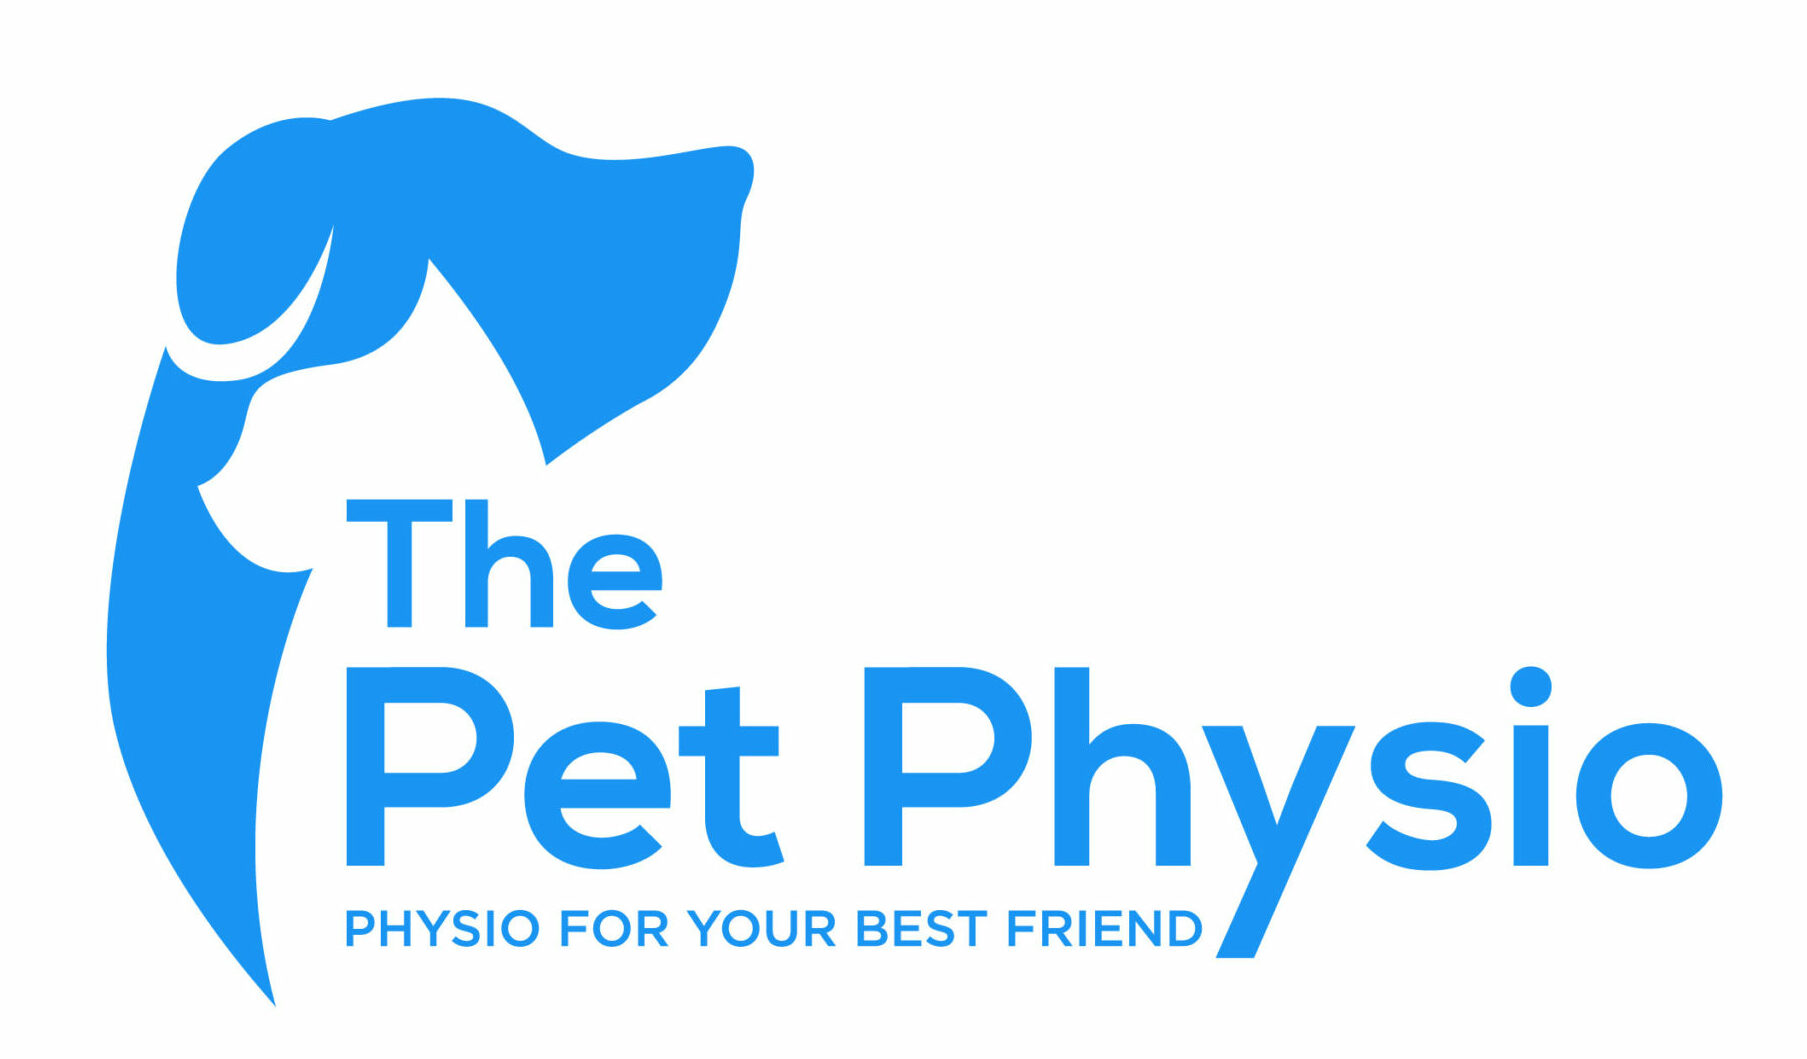 The Pet Physio